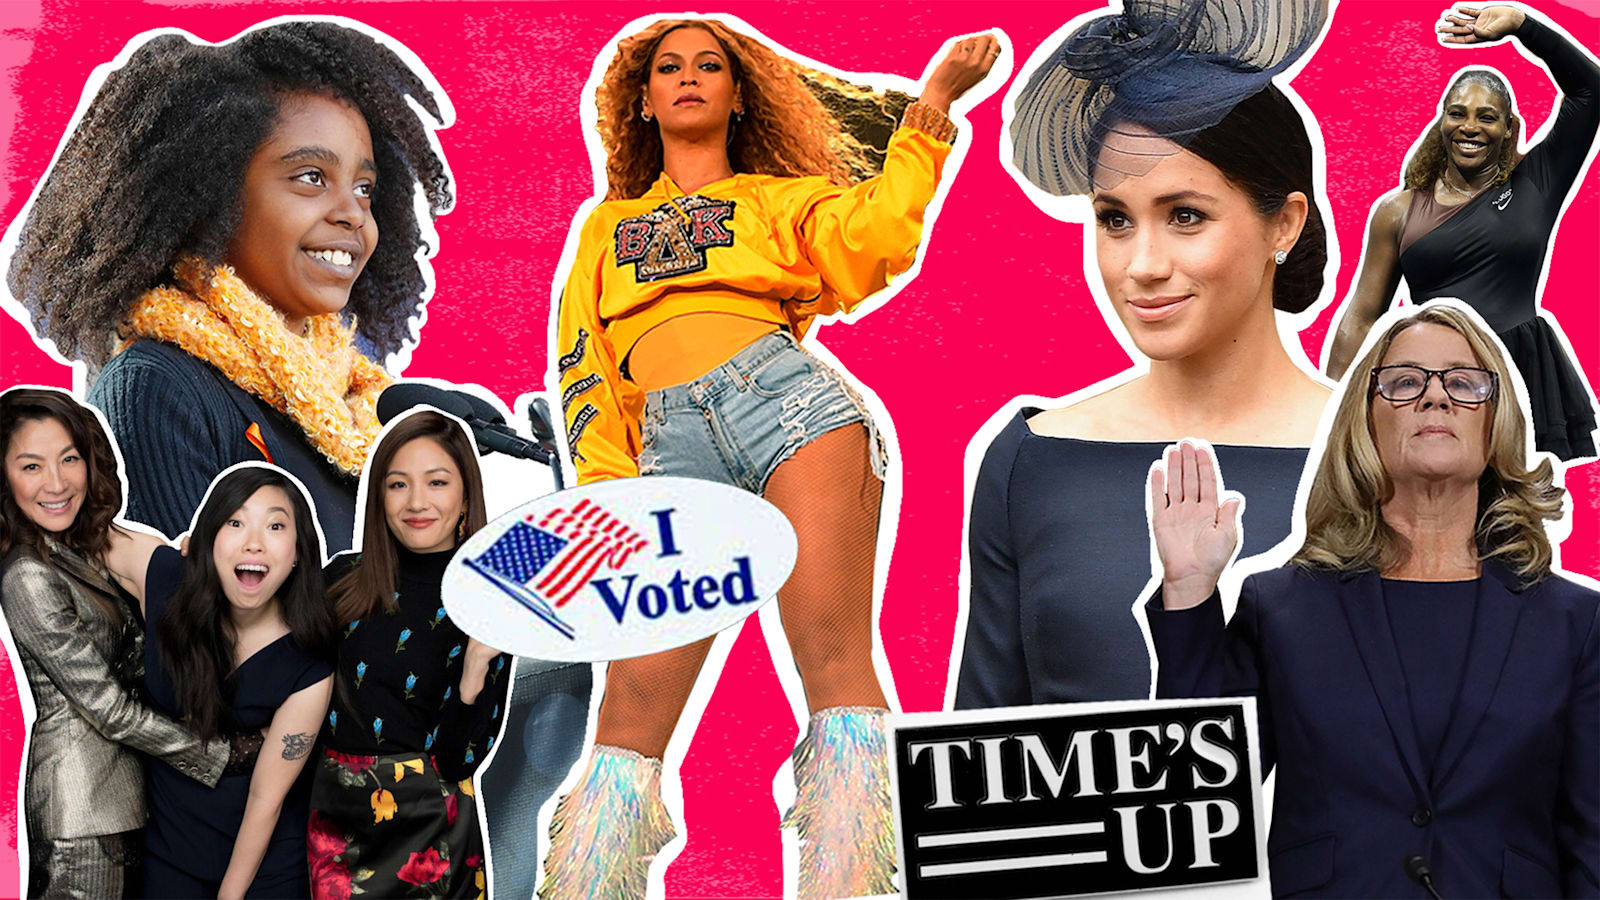 The Top 10 Feminist Moments That Defined 2018